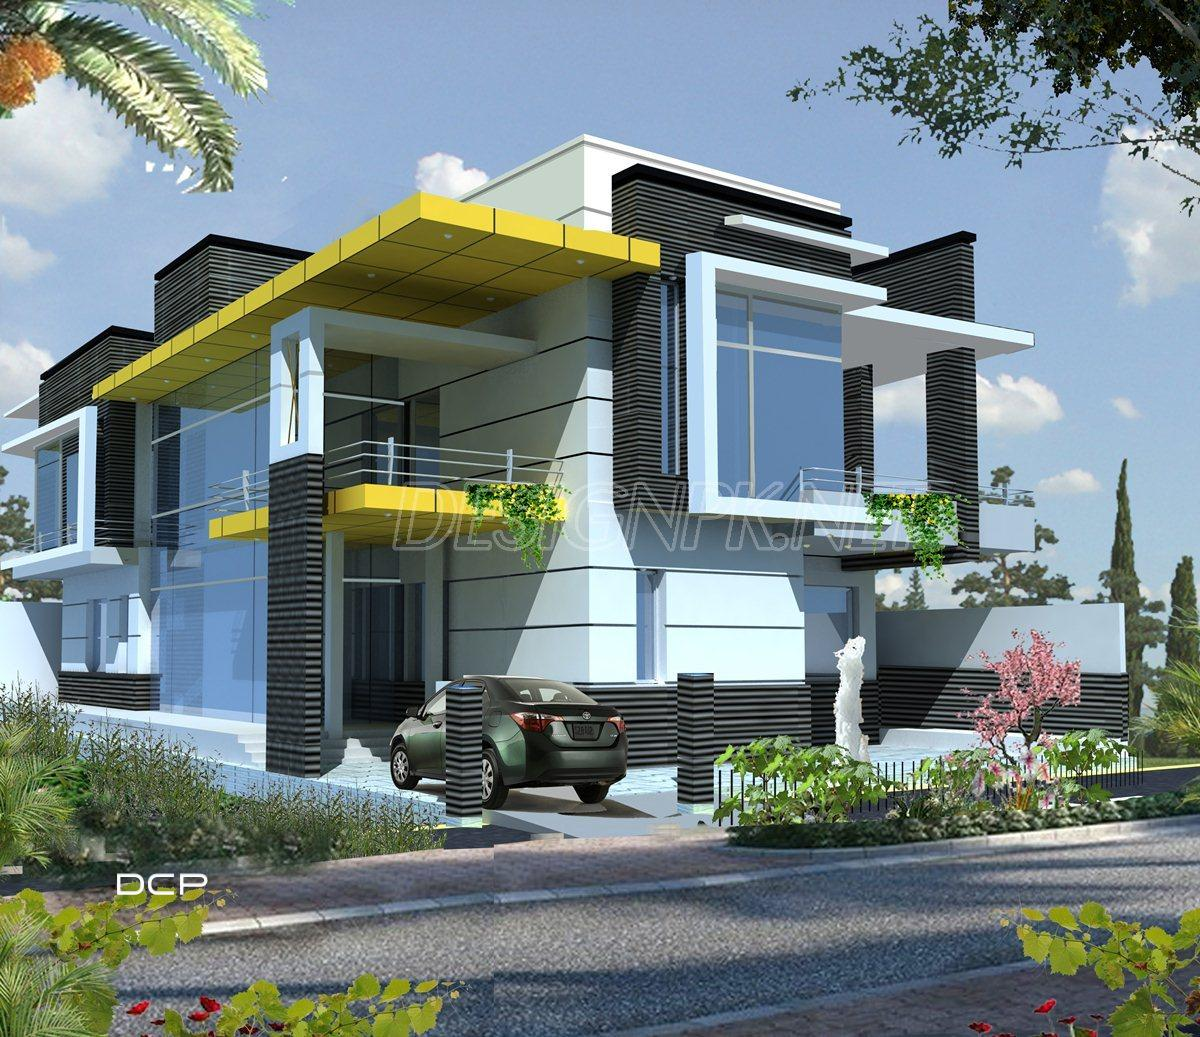 Villa Design And Construction Project In Pakistan